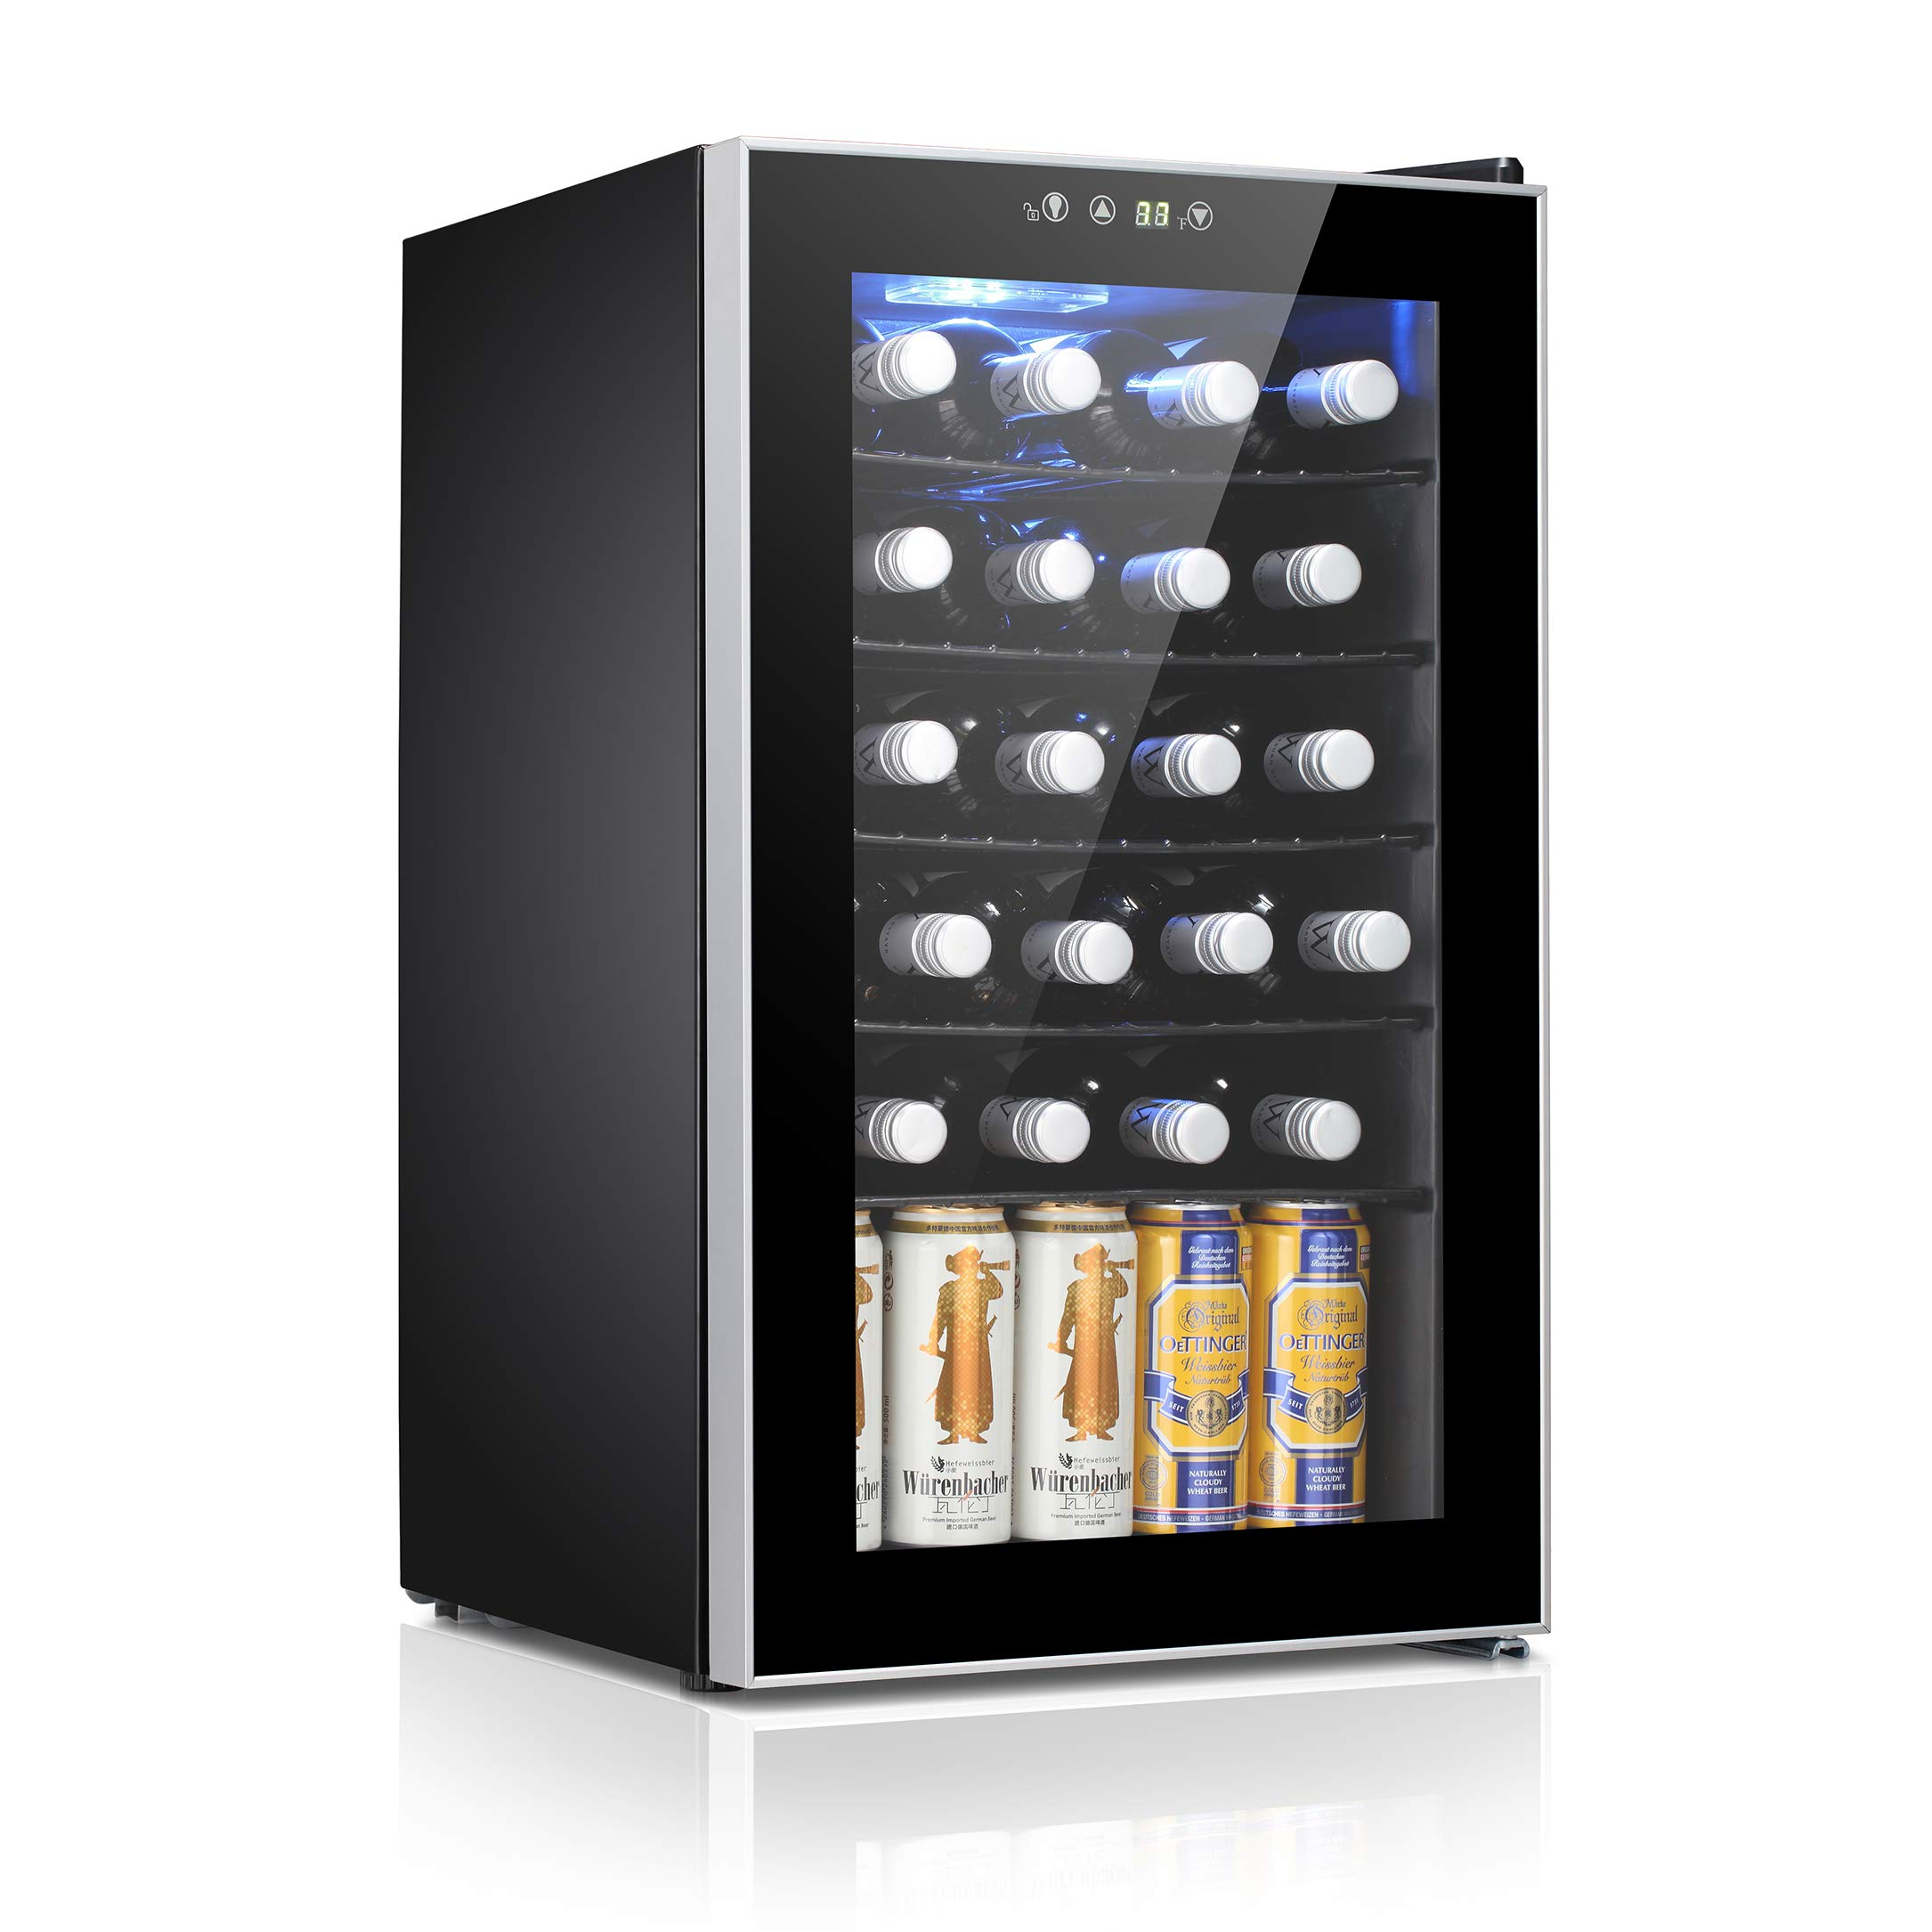 Antarctic Star 24 Bottle Wine Cooler/Cabinet Refigerator Small Wine Cellar Beer Counter Top Bar Fridge Quiet Operation Compressor Freestanding Black (24 Bottle)